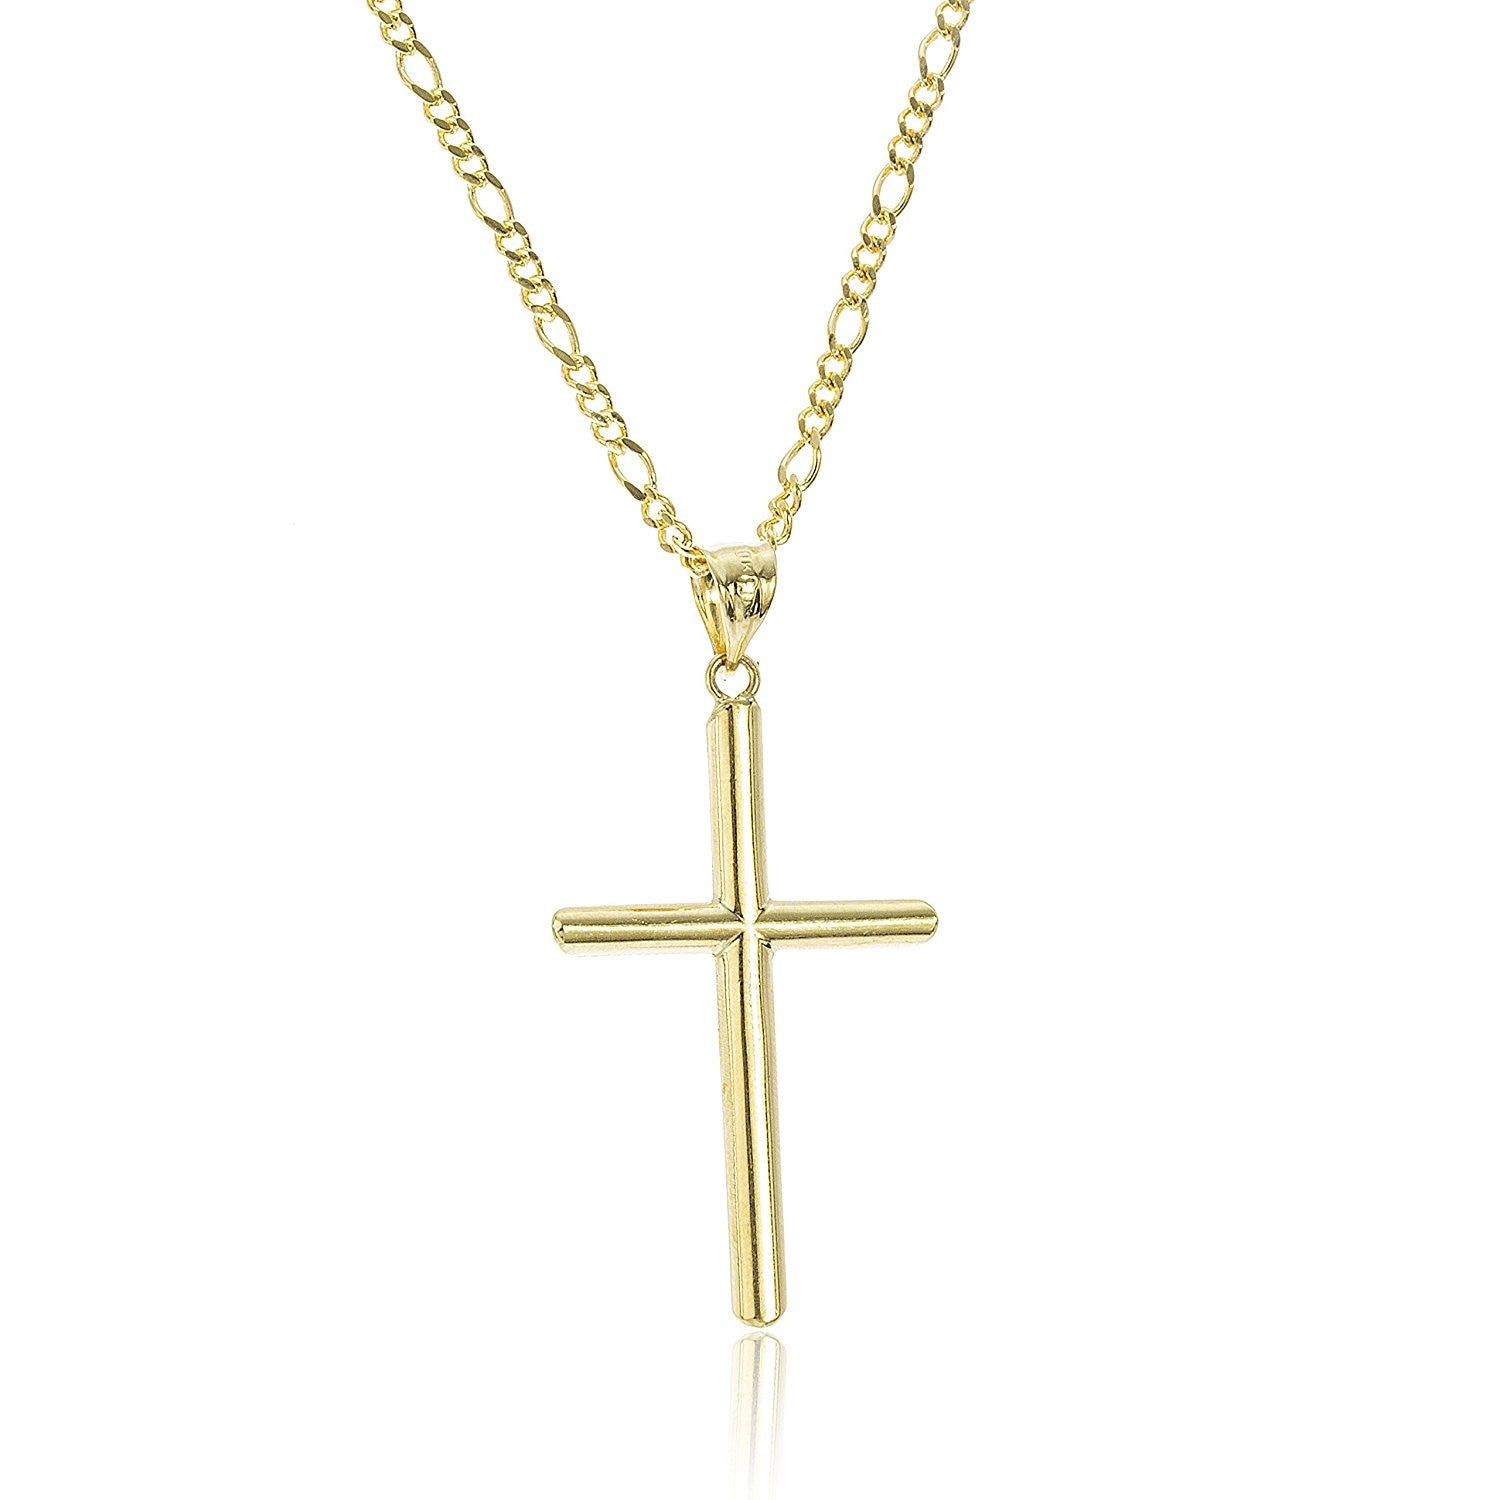 necklace sagittarius online chain rope products gold yellow solid